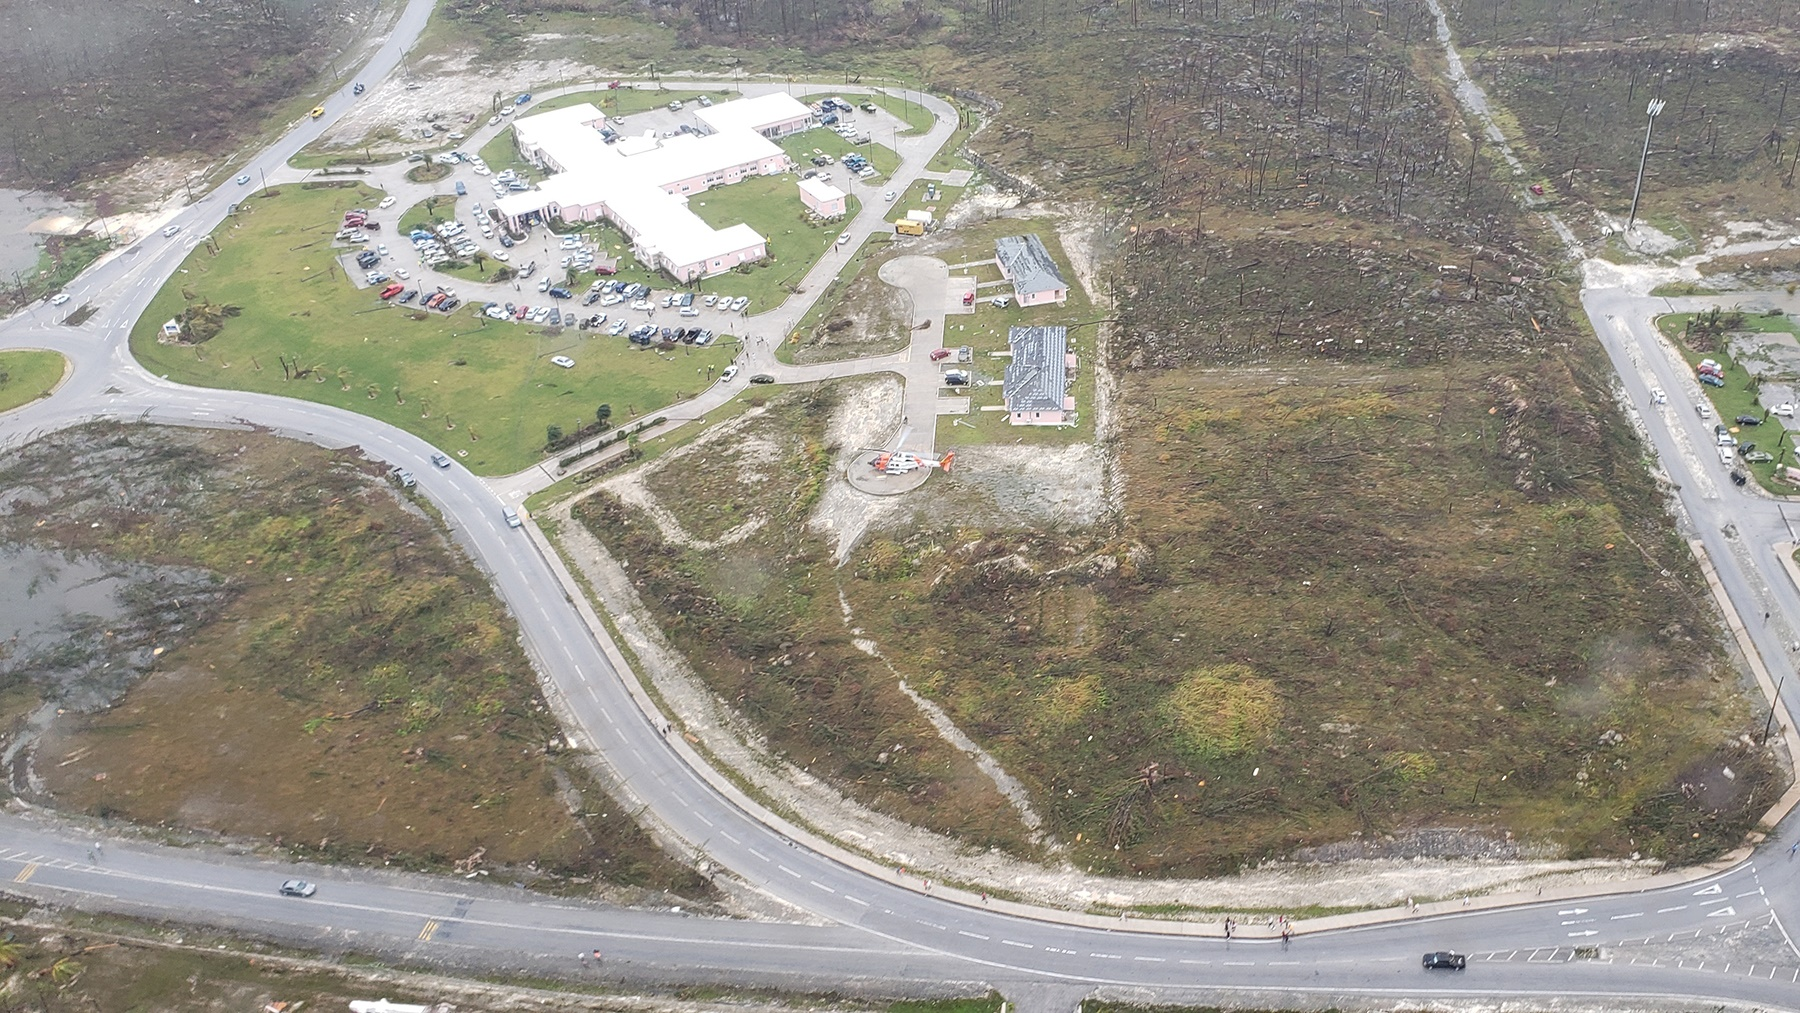 An aerial photograph of the clinic at Marsh Harbor, Grand Abaco, surrounded by damage caused by Hurricane Dorian. (Photo courtesy of the U.S. Coast Guard)